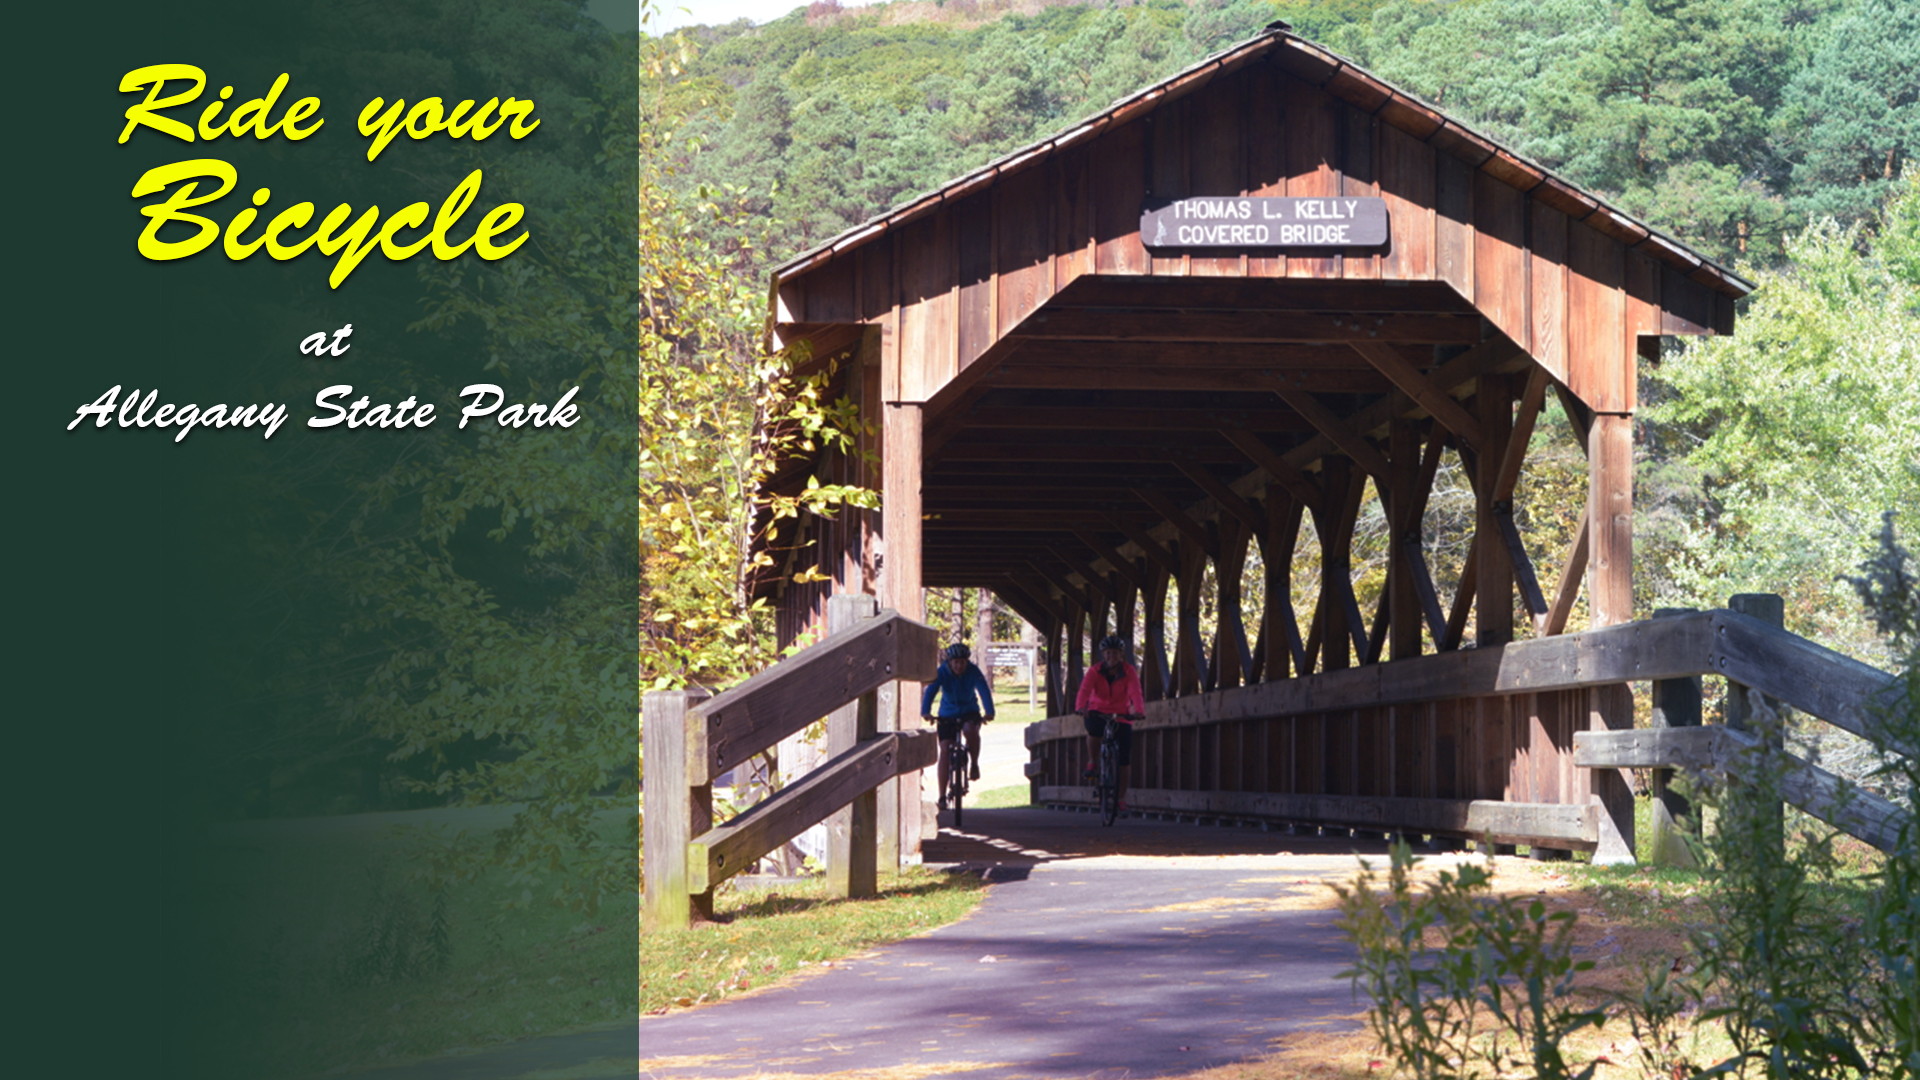 Where to bicycle in Cattaraugus County